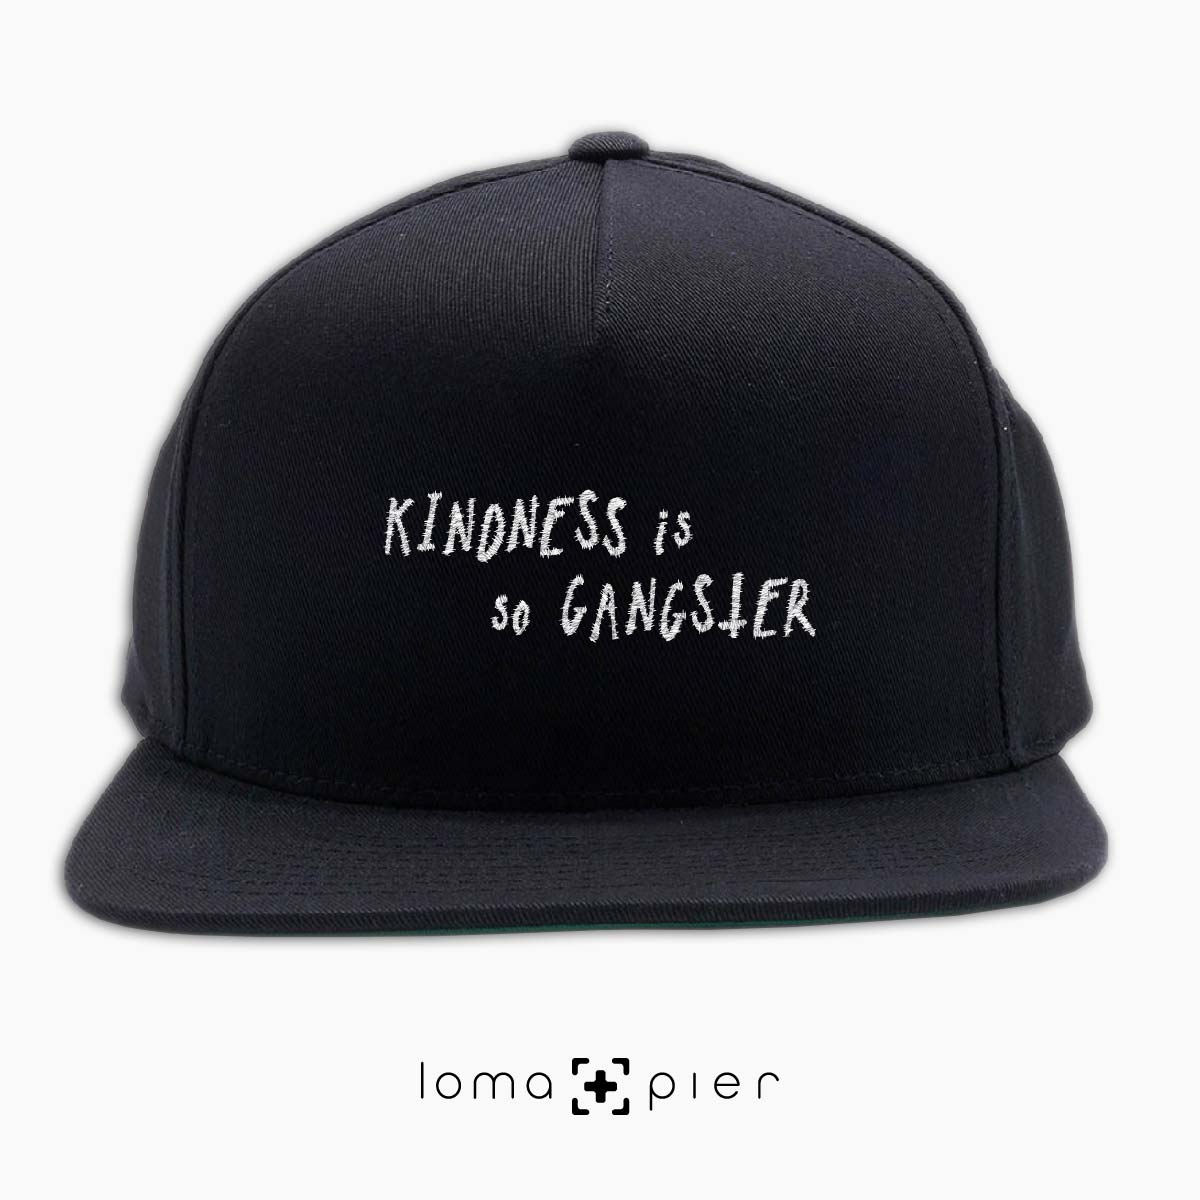 645d527ced5 KINDNESS IS SO GANGSTER typography embroidered on a black classic snapback  hat with white thread by